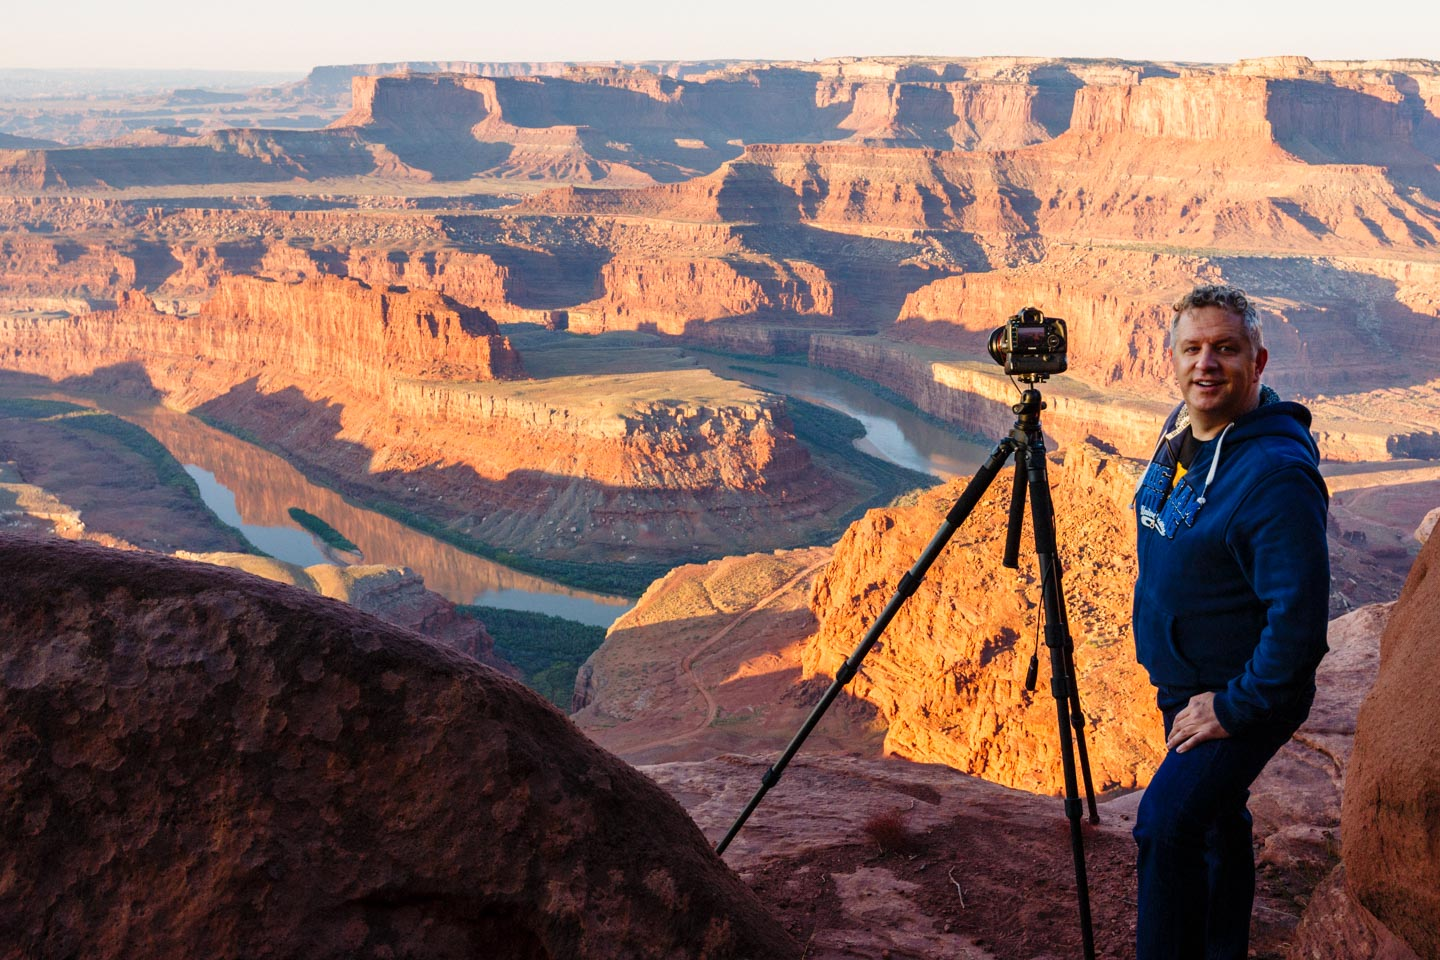 dav.d with his camera and his tripod ready to rock the Landscape photography